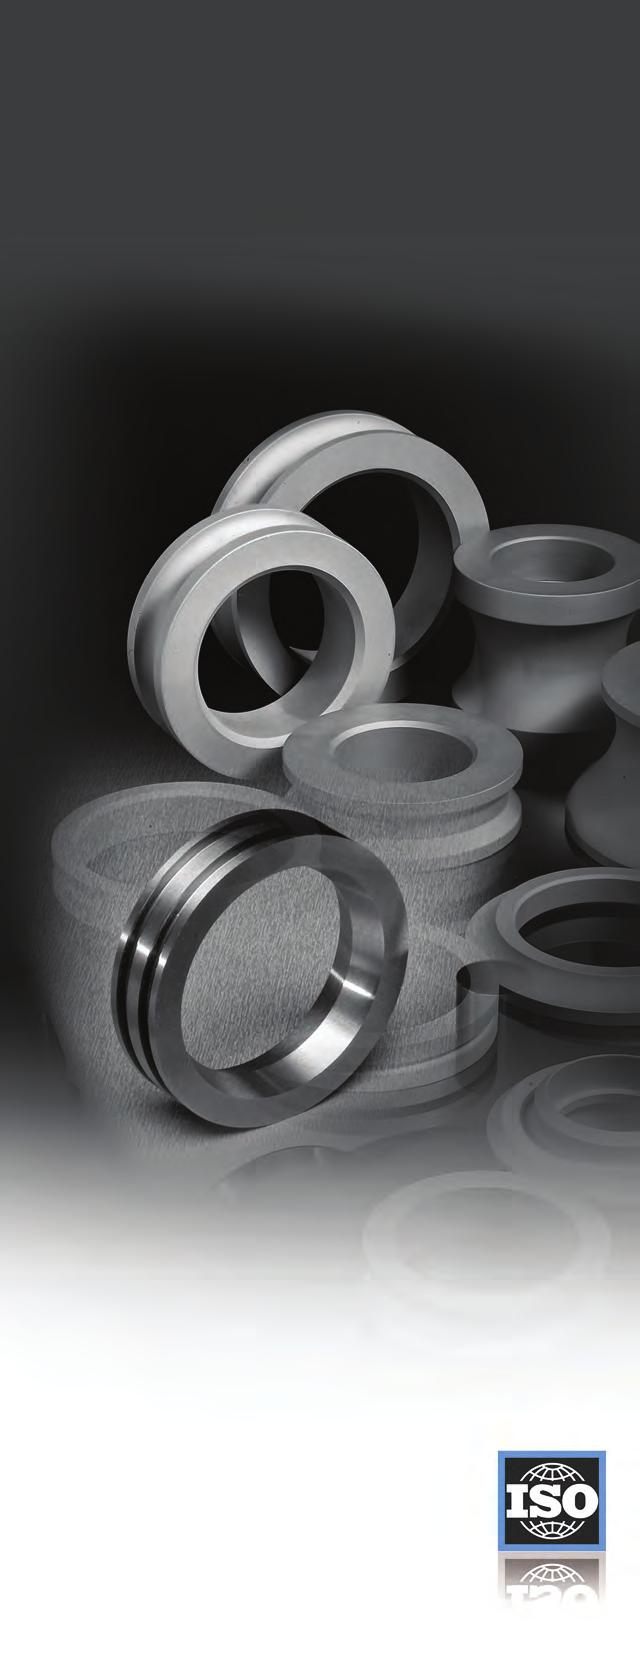 DESIGNING FOR CARBIDE Solutions for industry specific requirements Cemented carbide is a unique blend of fine grain tungsten carbide powder and a small amount of binder material, usually cobalt, also